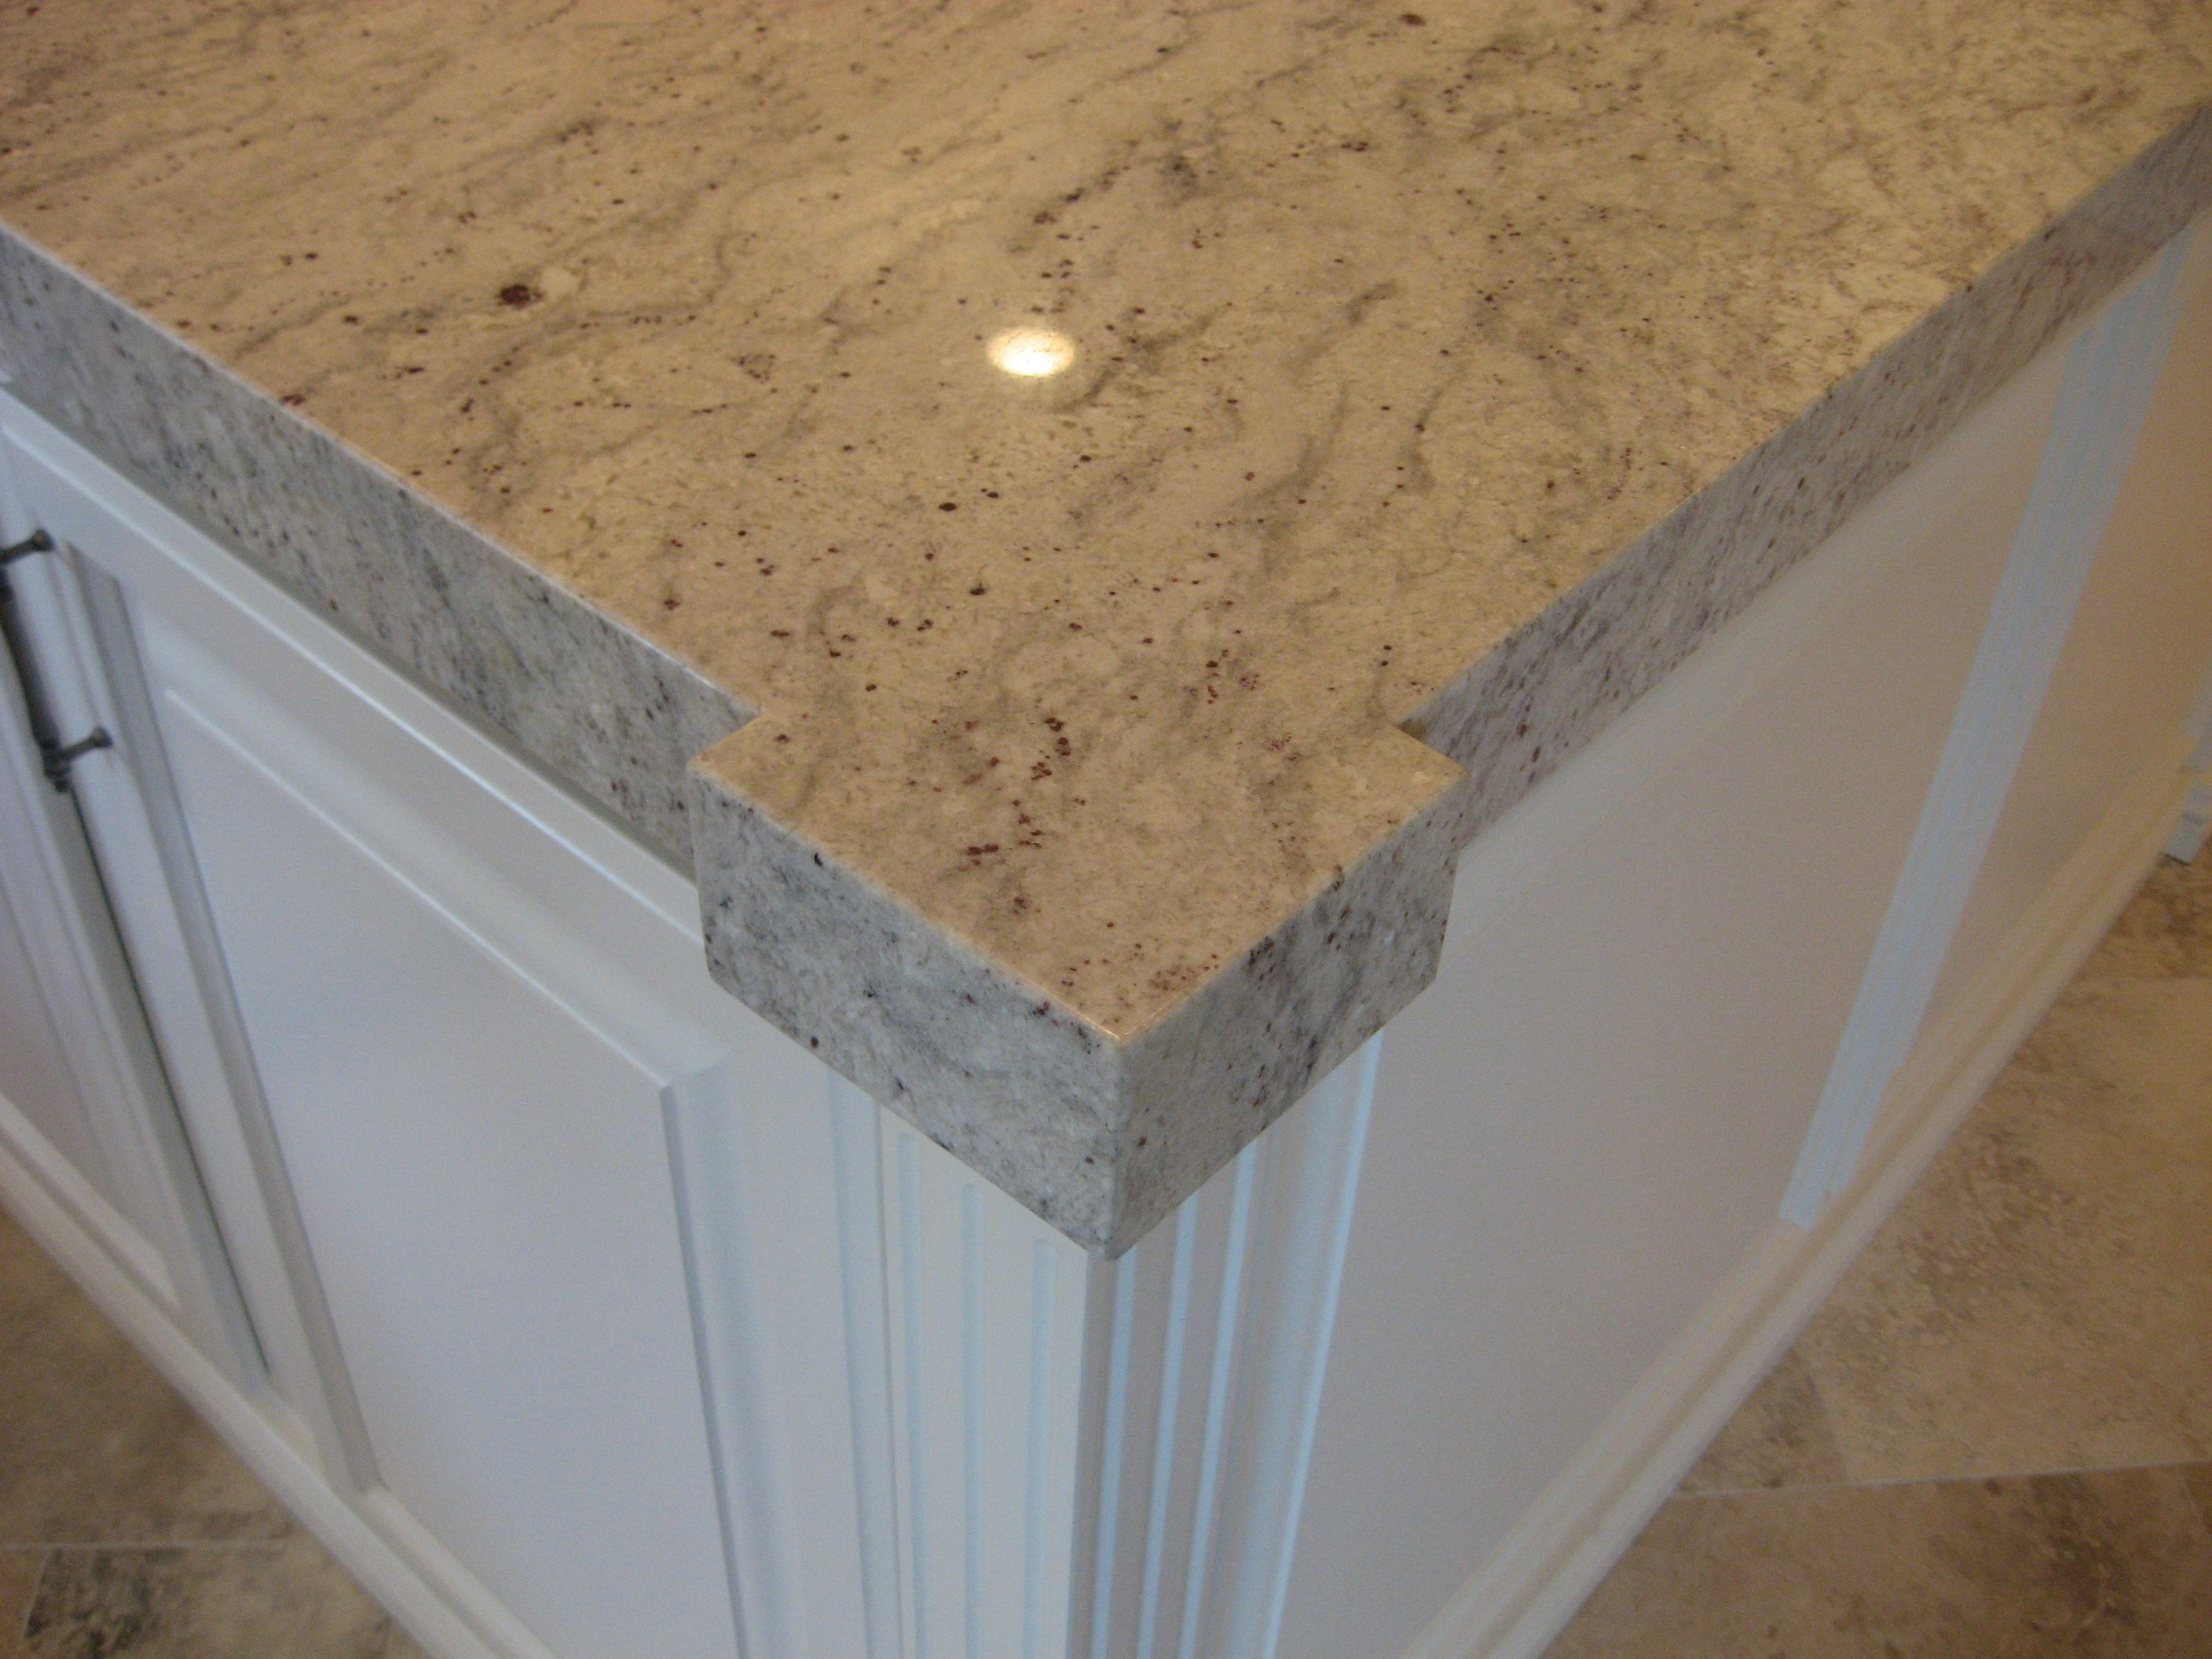 6 Cm Granite Edge Details Some Suggestions For Edge Details For The Countertop Kitchens